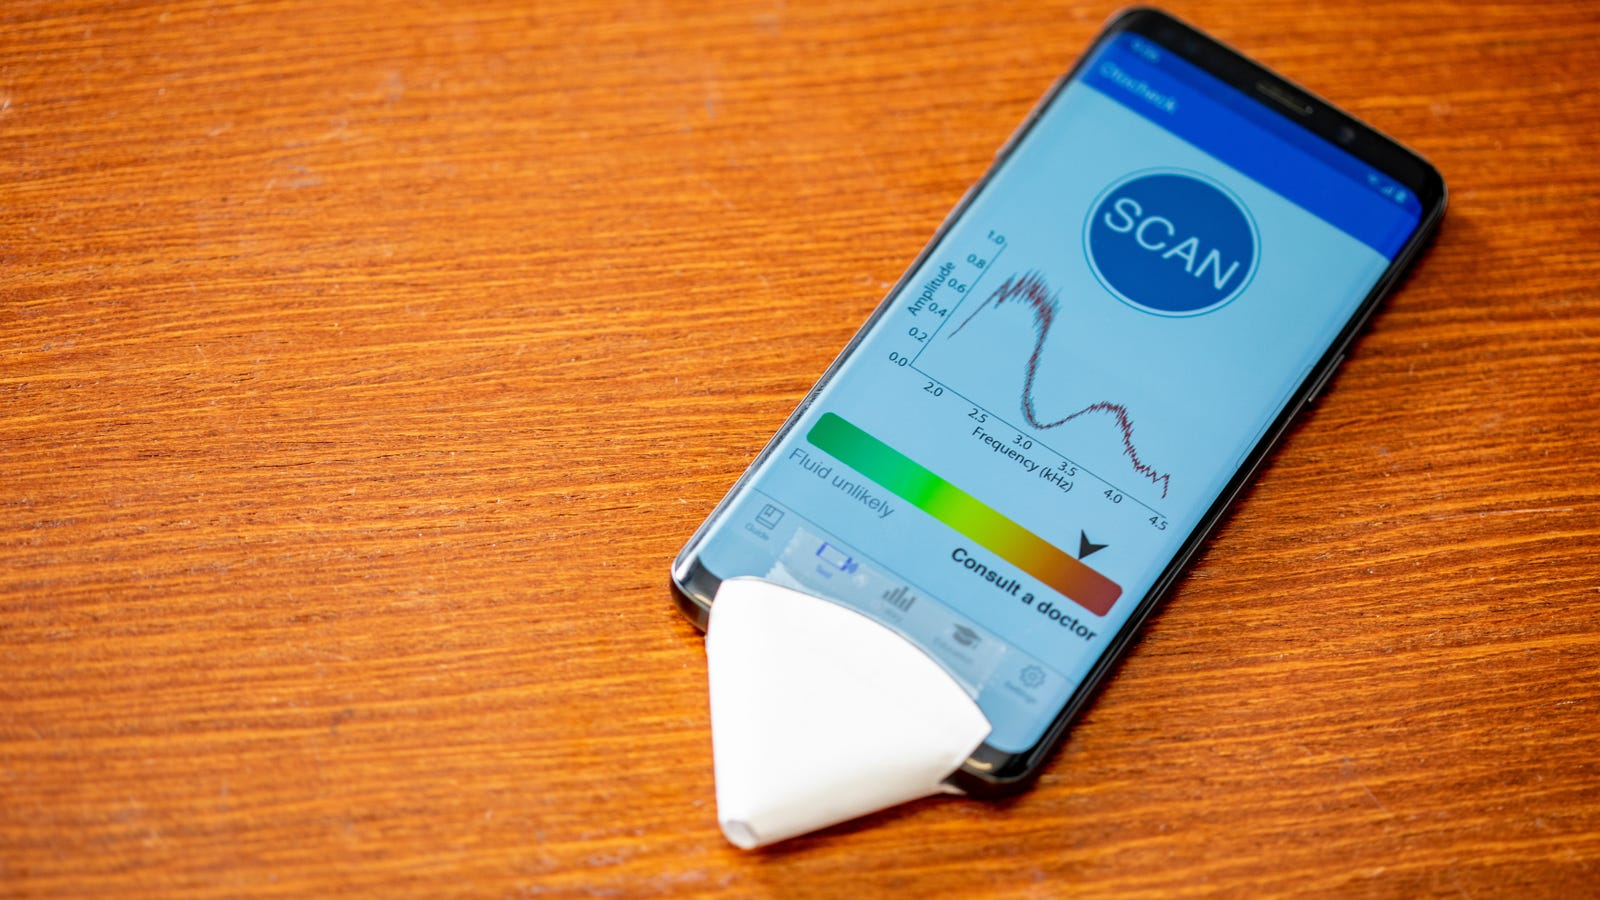 Scientists Say They've Created a Smartphone App That Can Hear Ear Infections